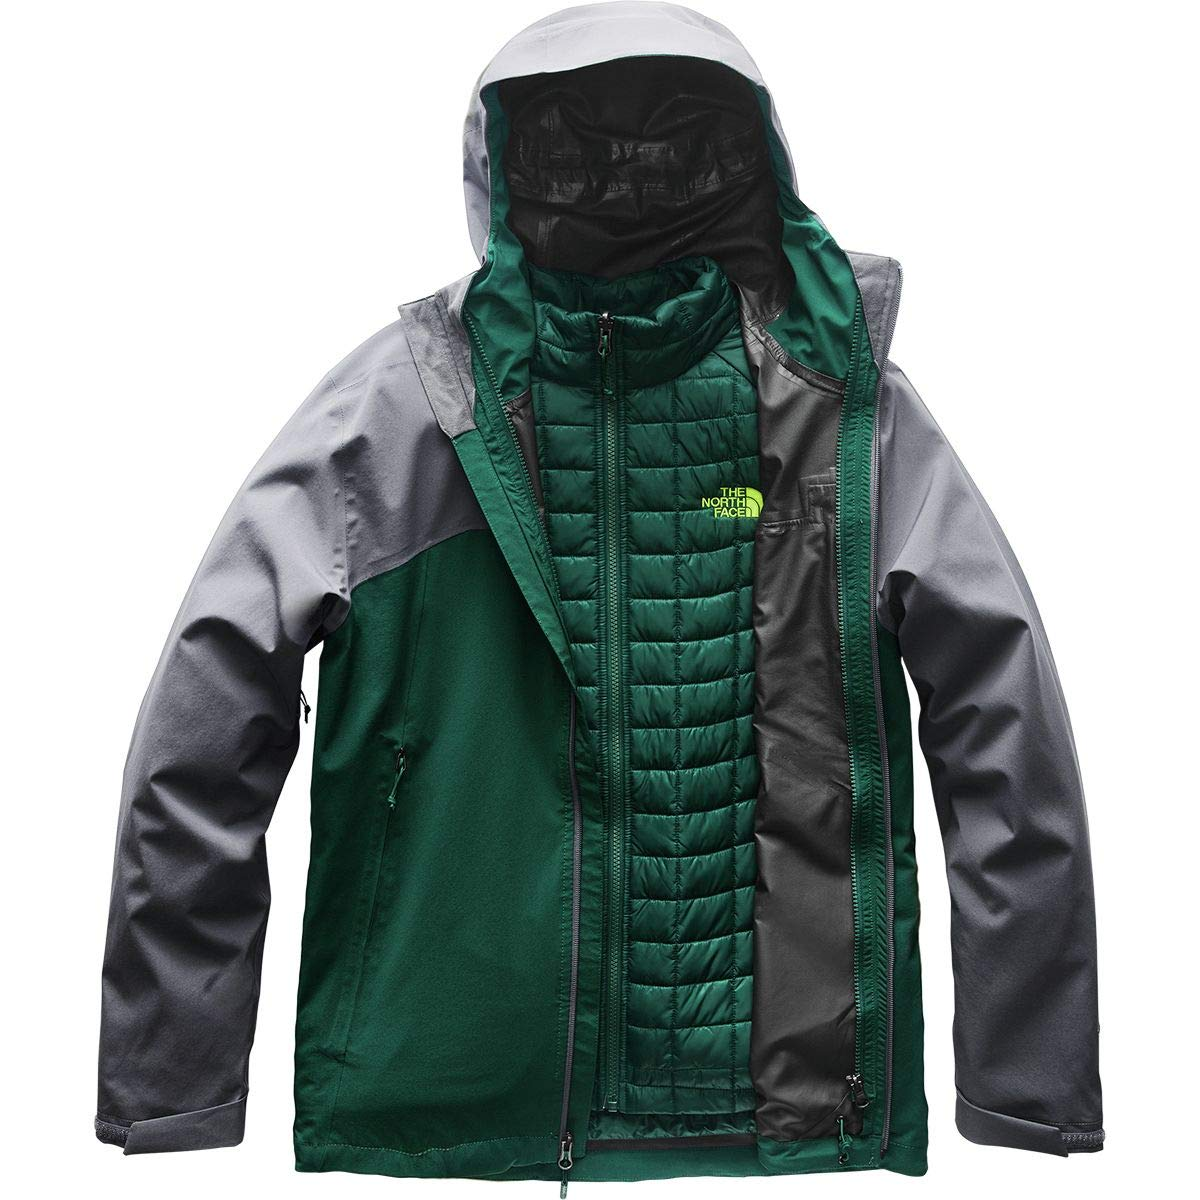 The North Face Men's Thermoball Triclimate Jacket - Botanical Garden Green & Vanadis Grey - S